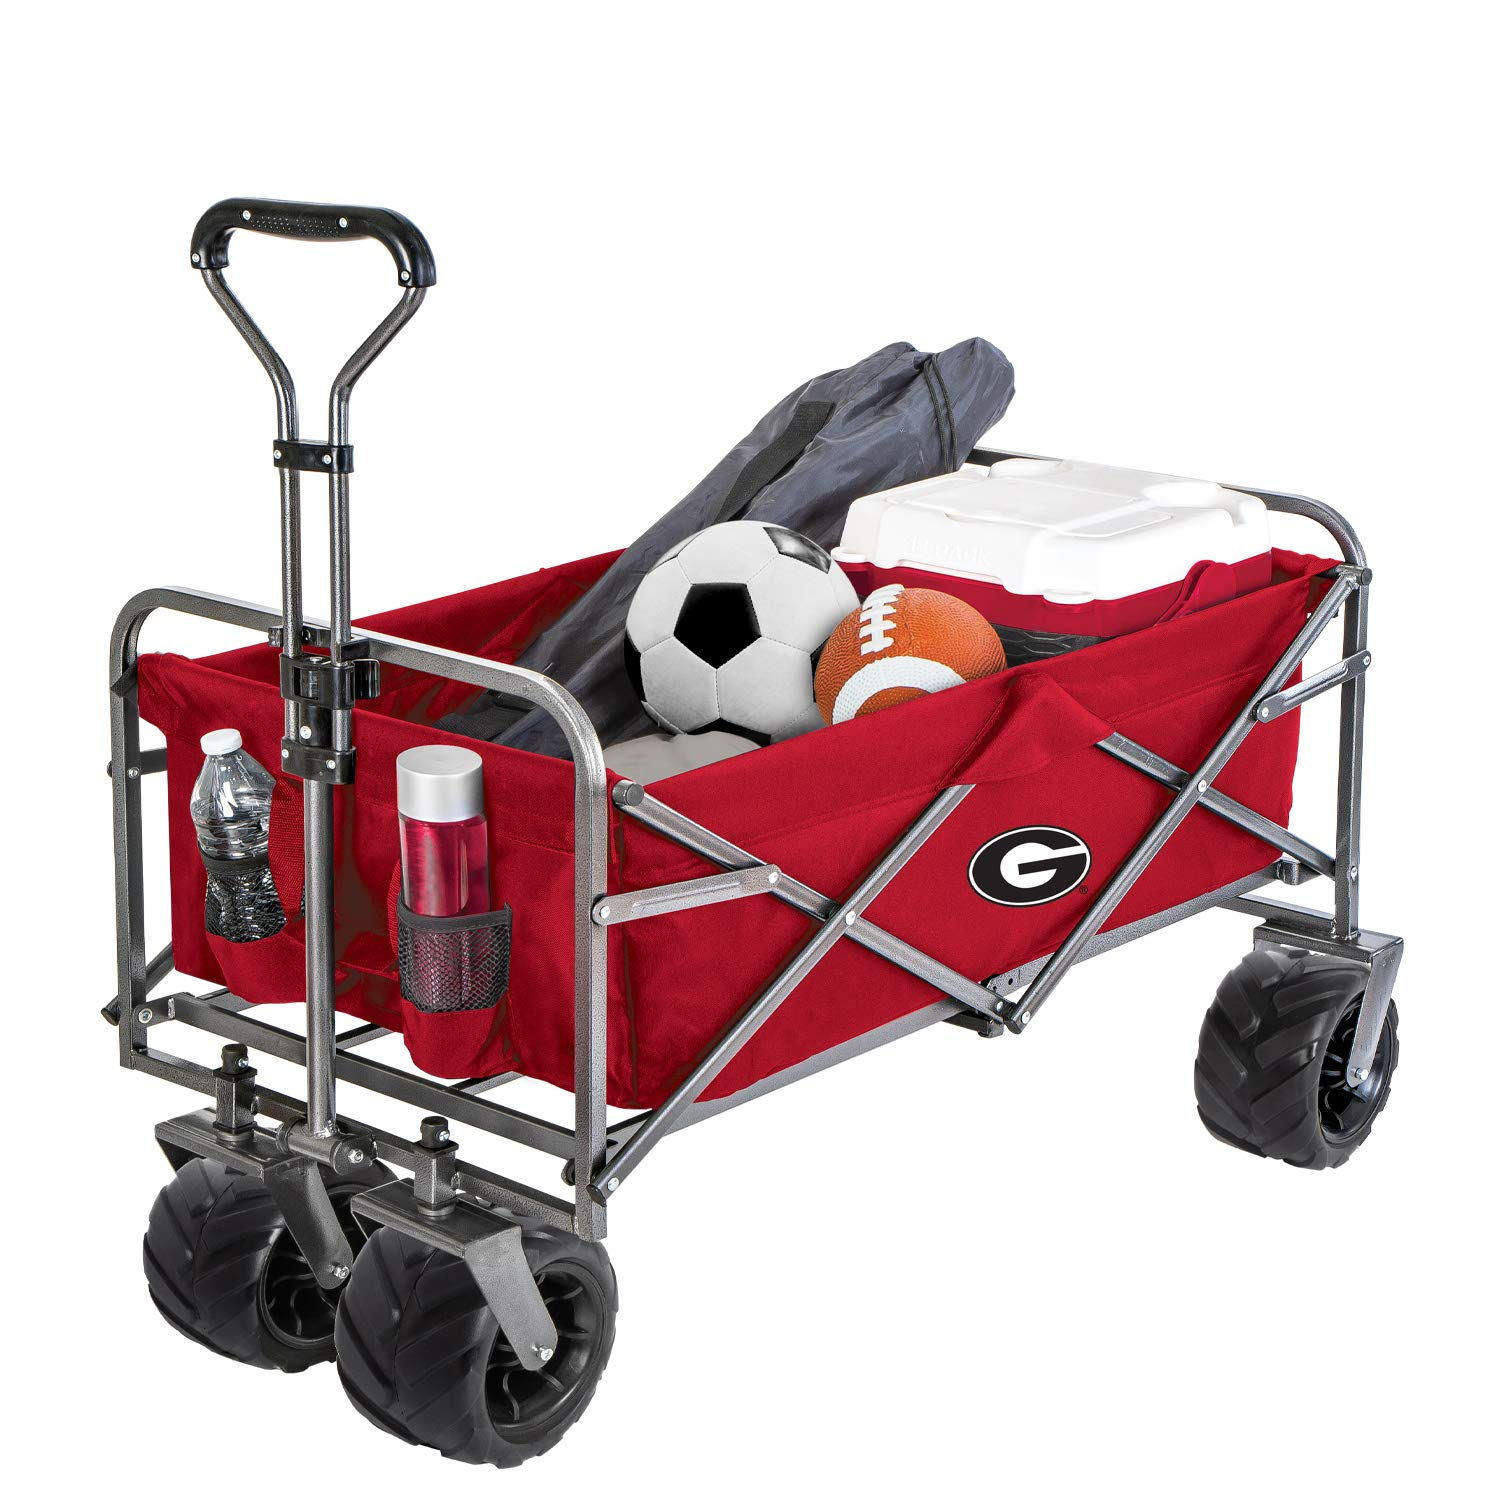 Smart Design Collegiate Heavy-Duty Utility Collapsible Wagon - Beach Cart - 20.15 x 35.5 x 22.5 inch - University of Georgia Team Design - Officially Licensed Logo - Black & Red Colors - [Bulldogs] by Smart Design